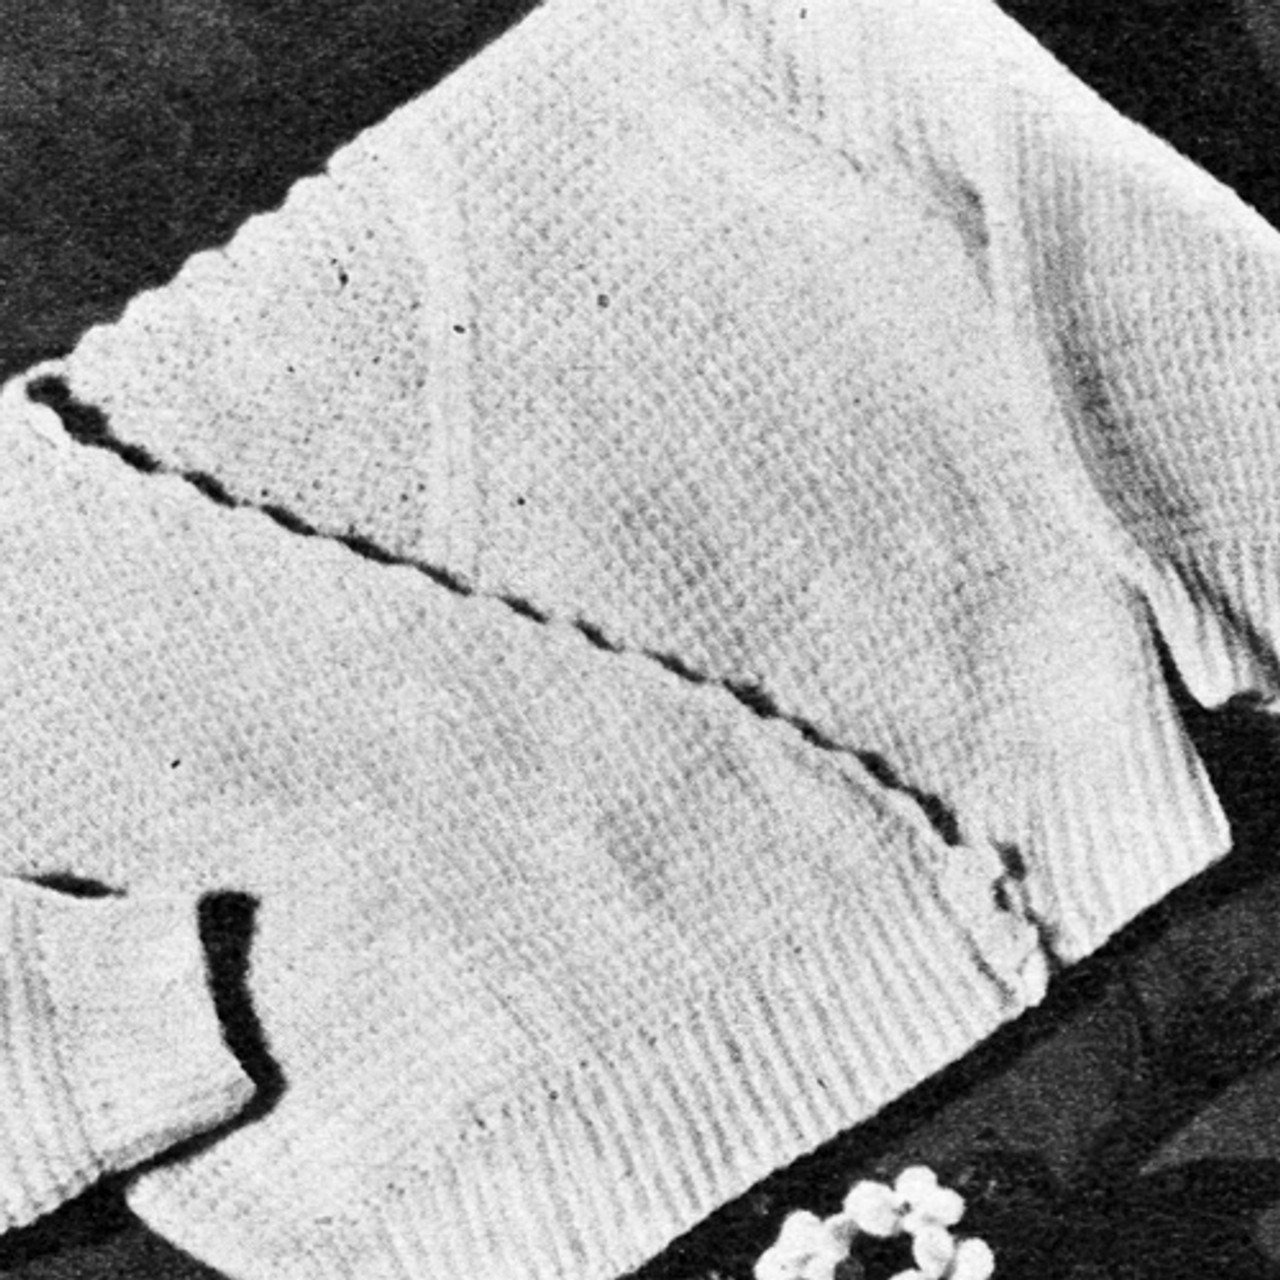 Baby Crocheted Cross-Over Sweater Pattern